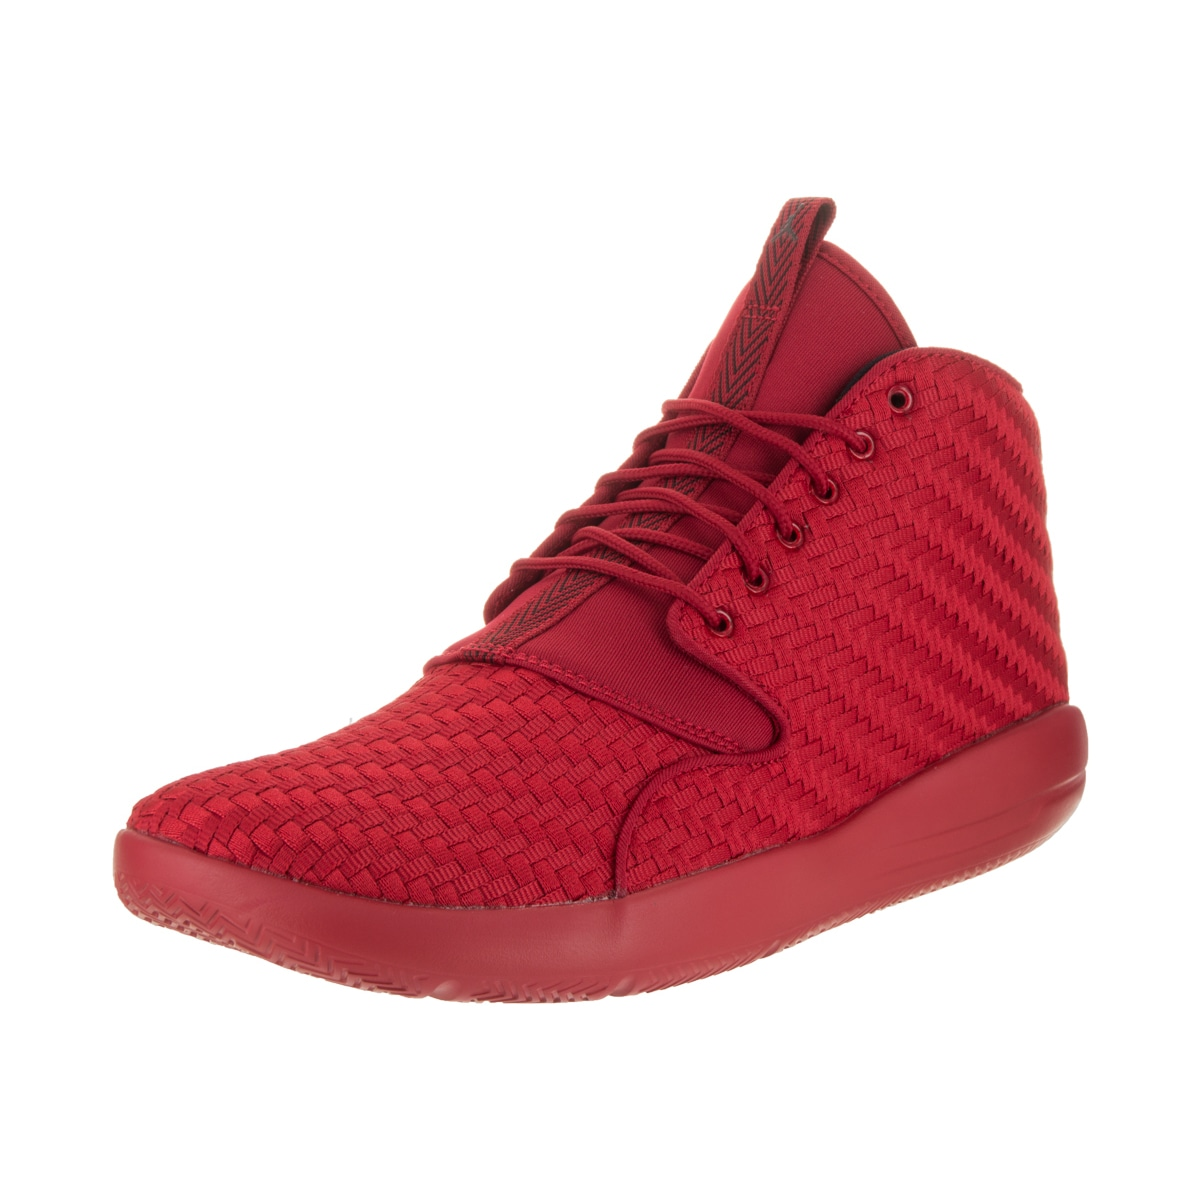 261b50481e8 ... france shop nike jordan mens jordan eclipse chukka red textile  basketball shoes free shipping today overstock